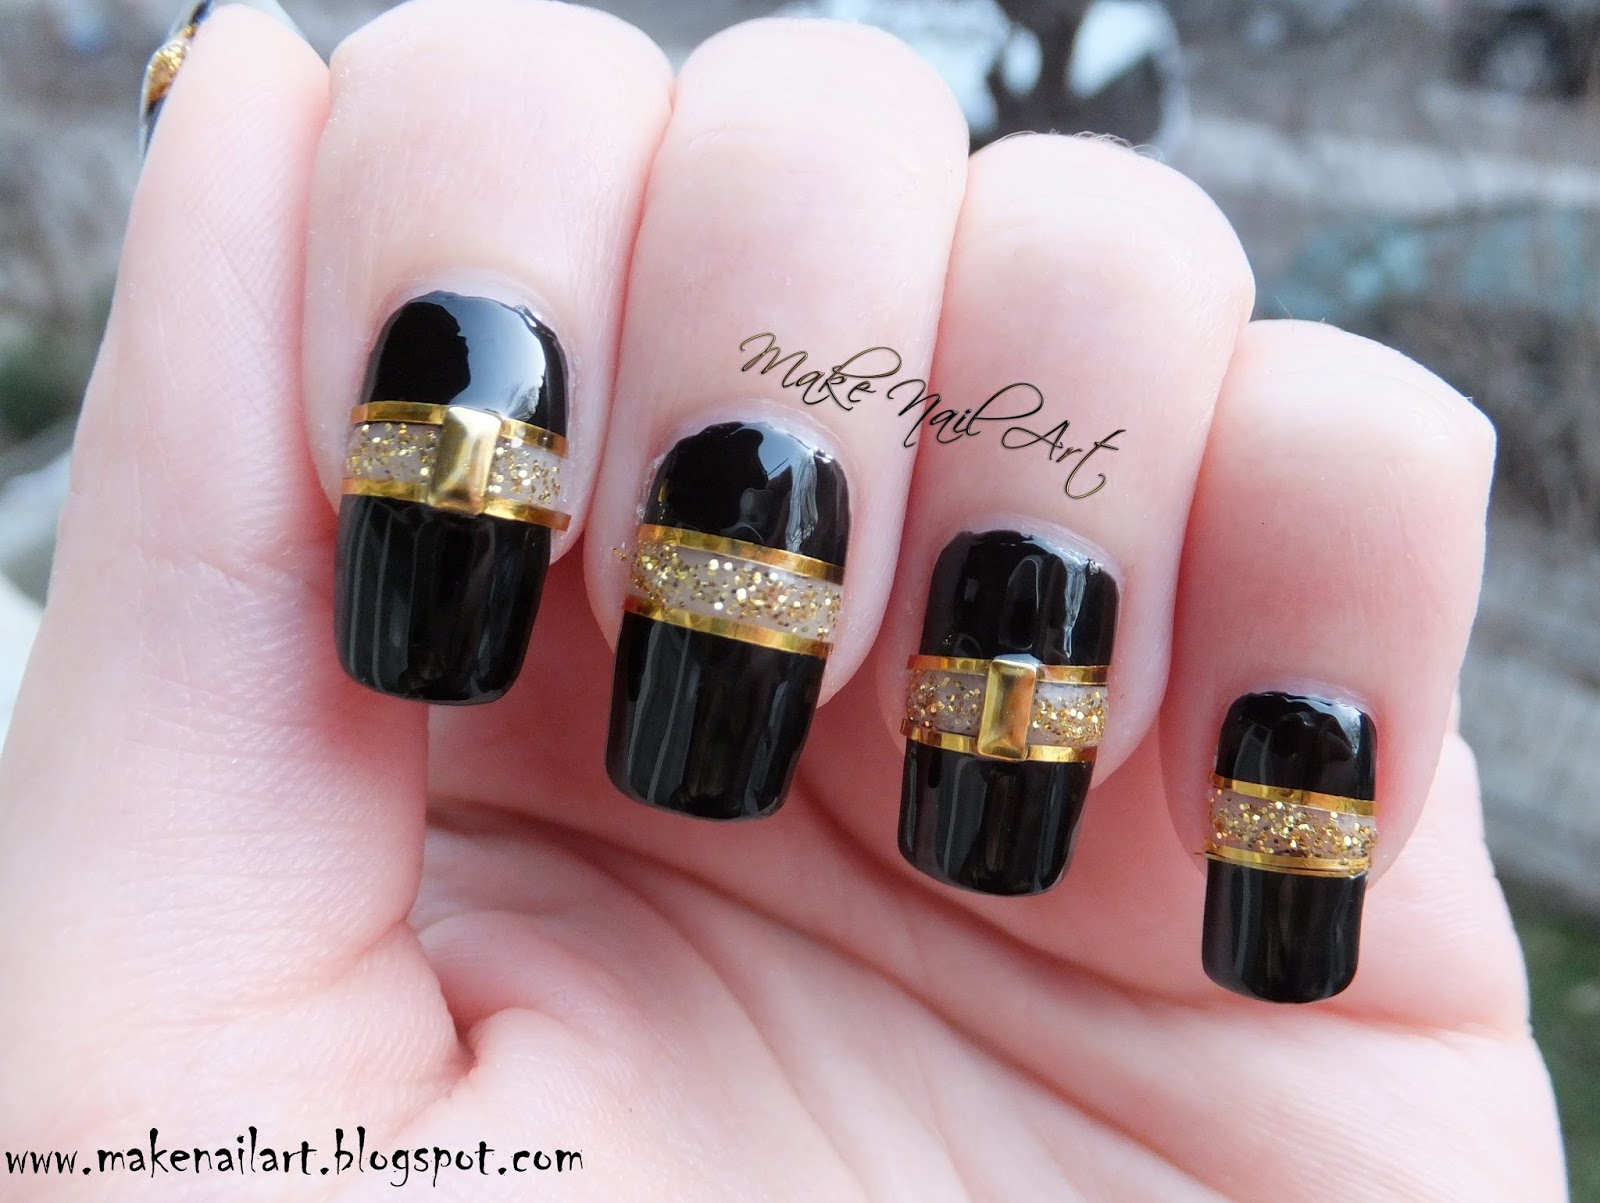 Make nail art black and gold cut out nail art design tutorial gold glitter polish a tape gold striping tape gold studs a top coat prinsesfo Images